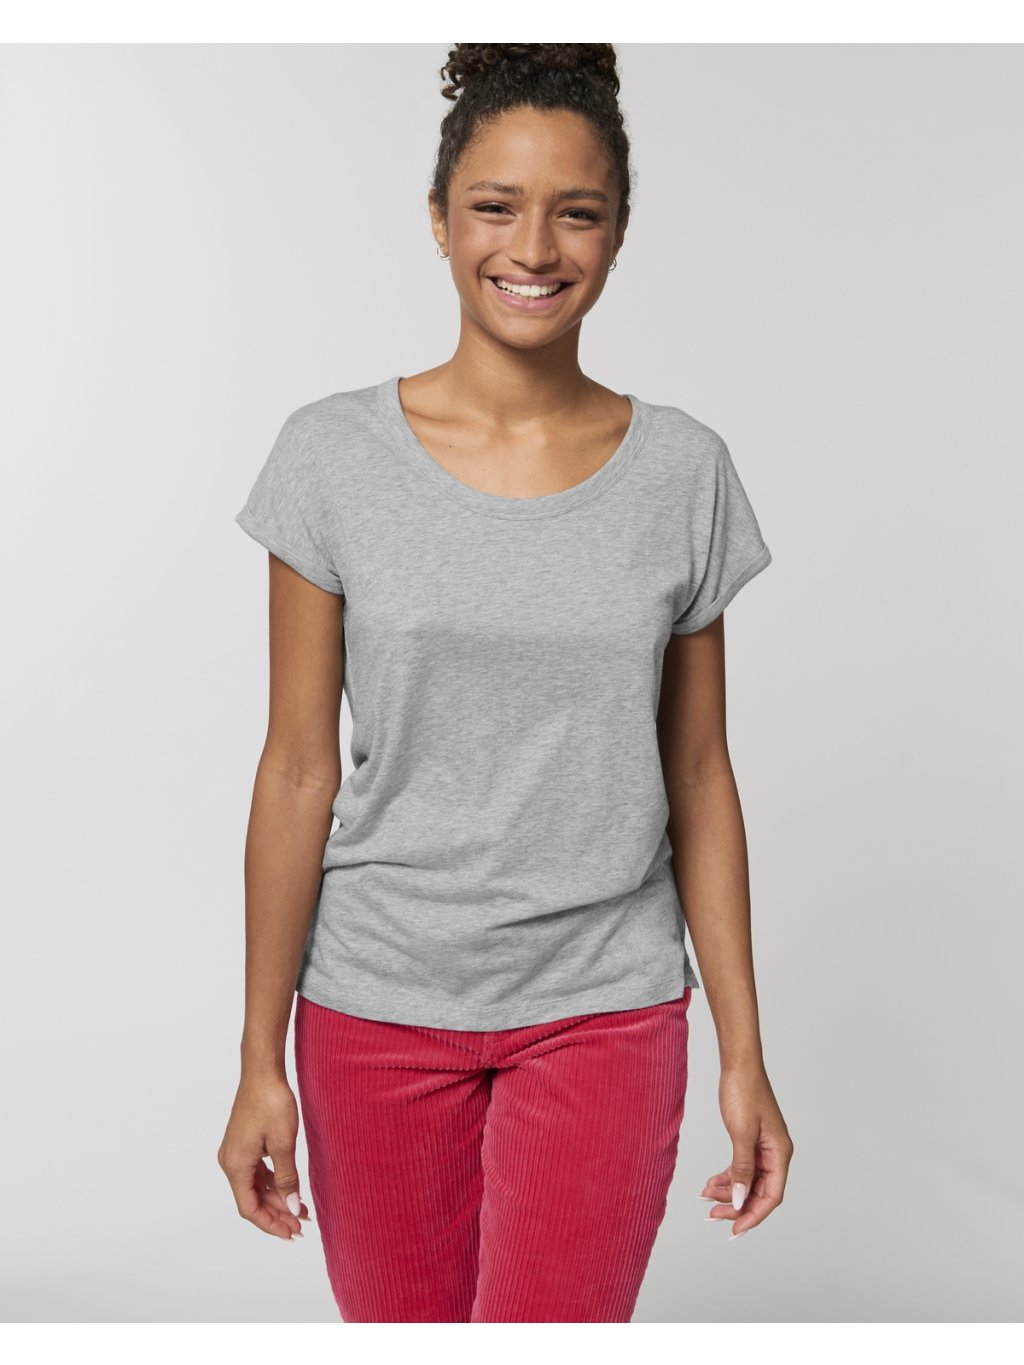 Stella Rounder Slub Heather Grey Slub Studio Front Main 5